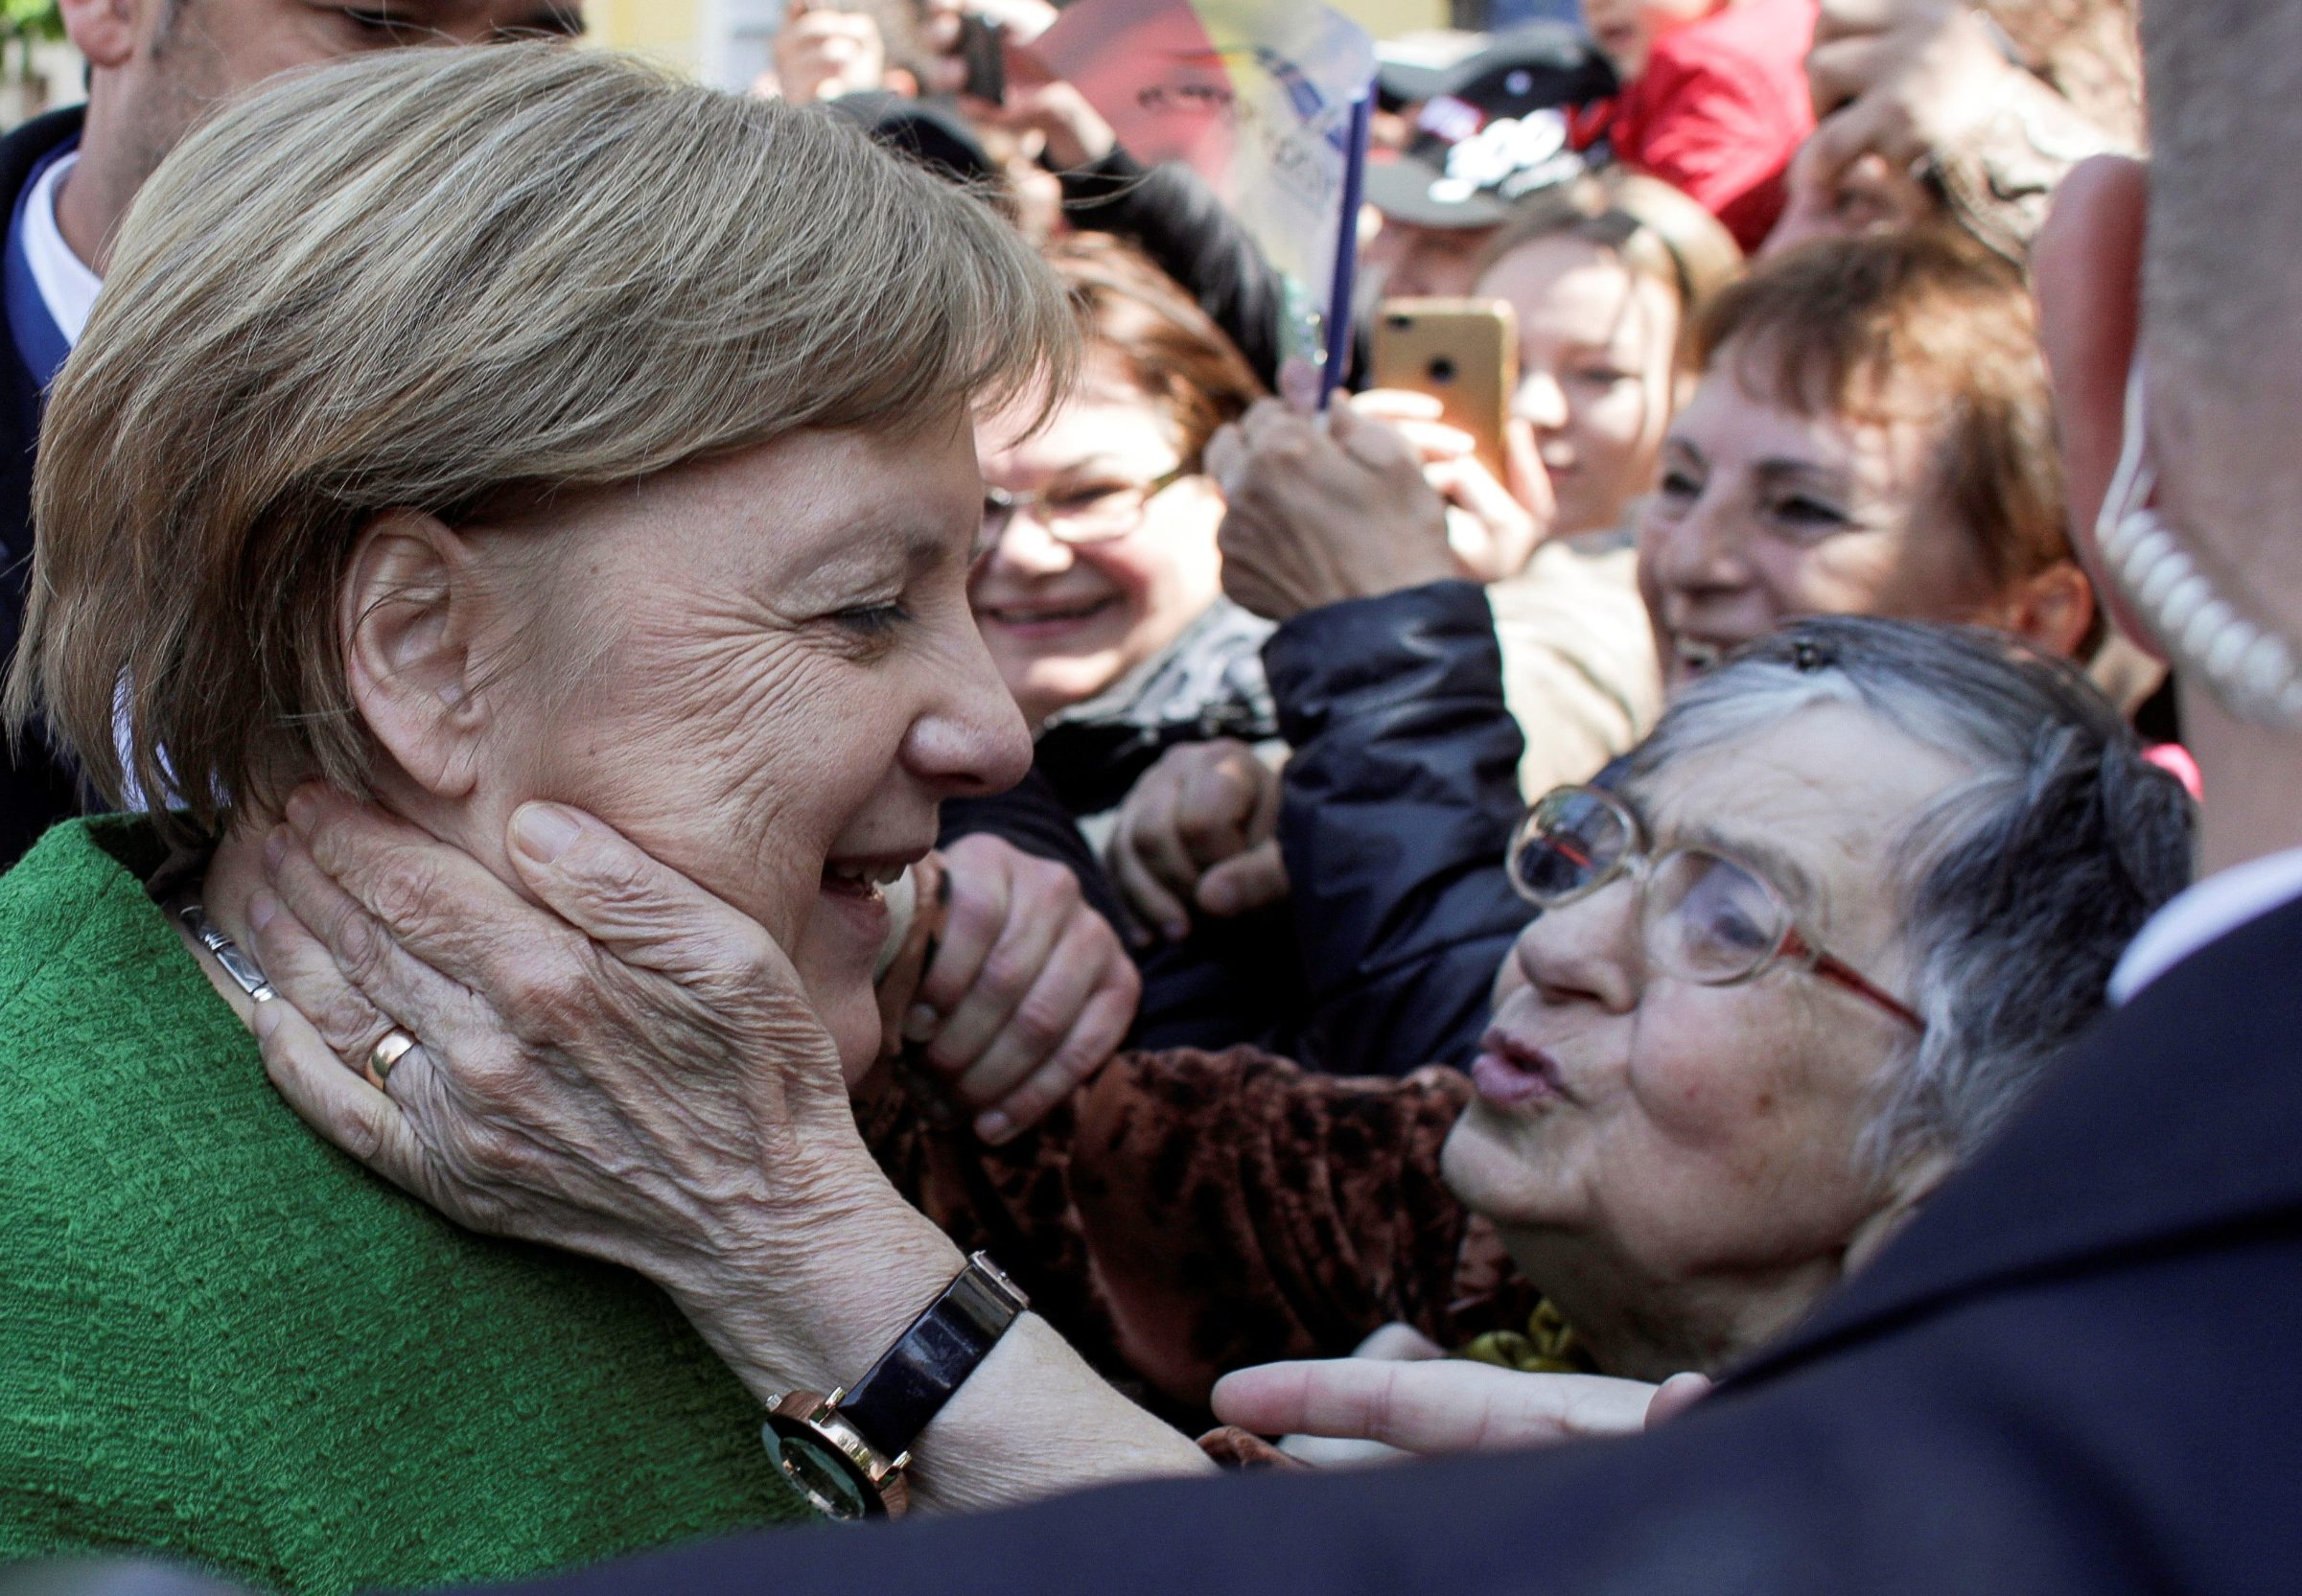 German Chancellor Angela Merkel greets people after posing for a family photo during the informal meeting of European Union leaders in Sibiu, Romania, May 9, 2019. Inquam Photos/Octav Ganea via REUTERS ATTENTION EDITORS - THIS IMAGE WAS PROVIDED BY A THIRD PARTY. ROMANIA OUT. NO COMMERCIAL OR EDITORIAL SALES IN ROMANIA     TPX IMAGES OF THE DAY